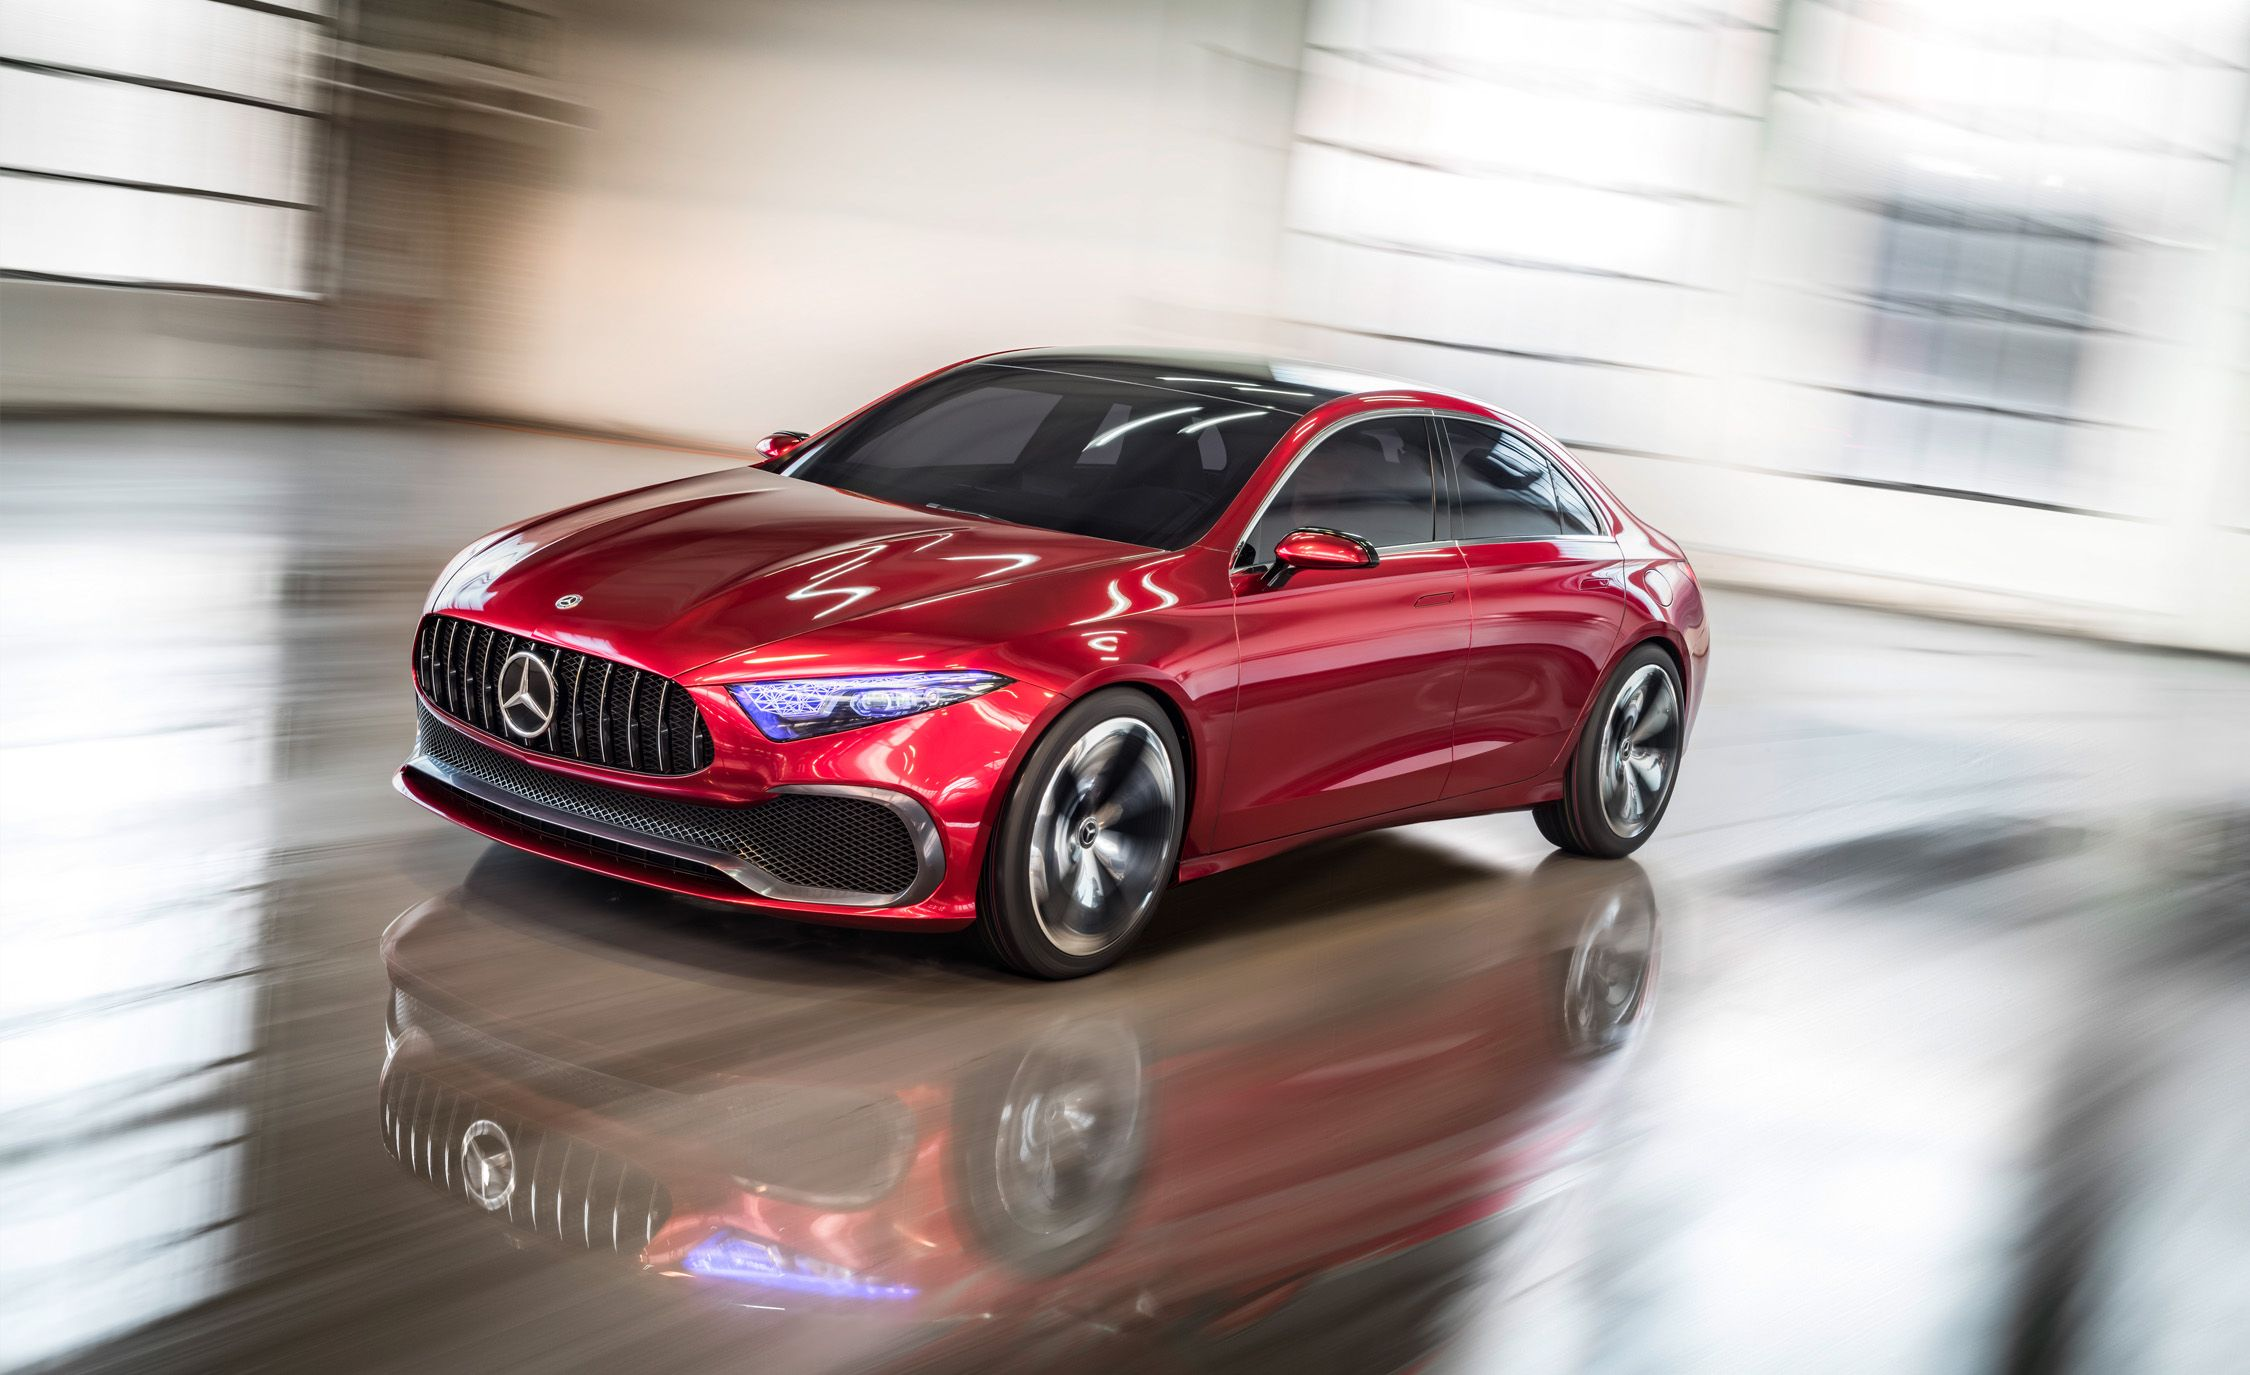 Mercedes-Benz Concept A Sedan: Very Likely To Become a Real Thing